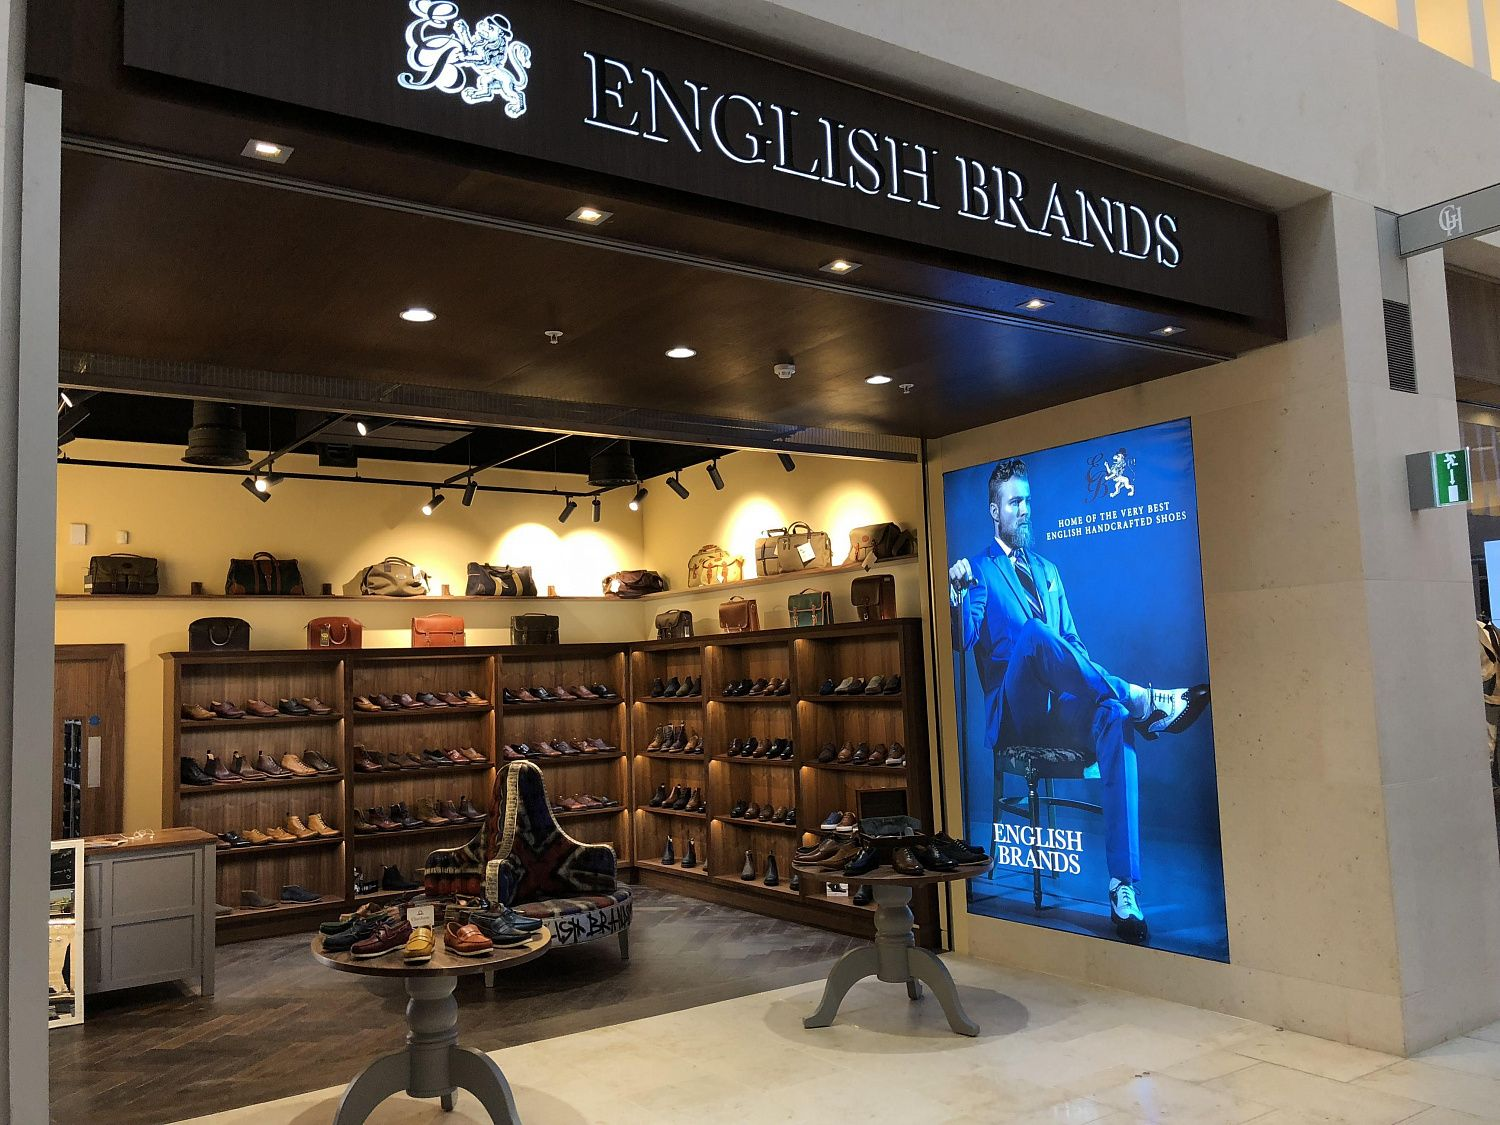 English Brands - Feeling Welcomed at the Mailbox Launch Party